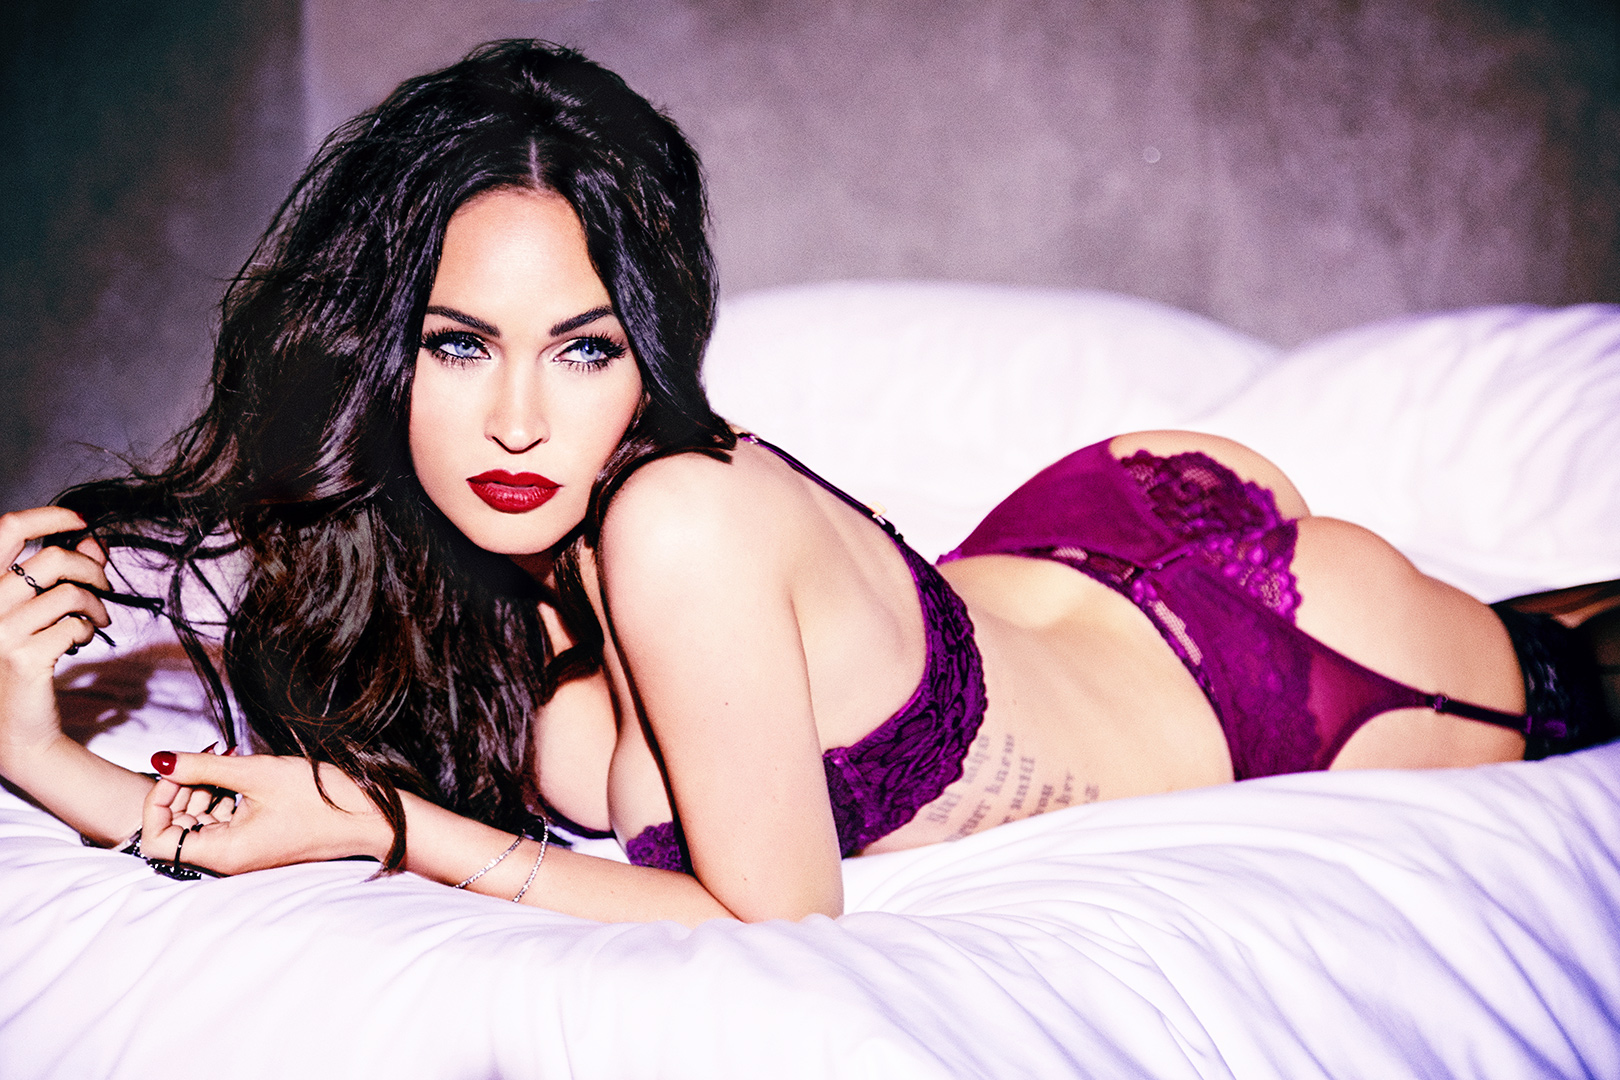 Megan Fox sex